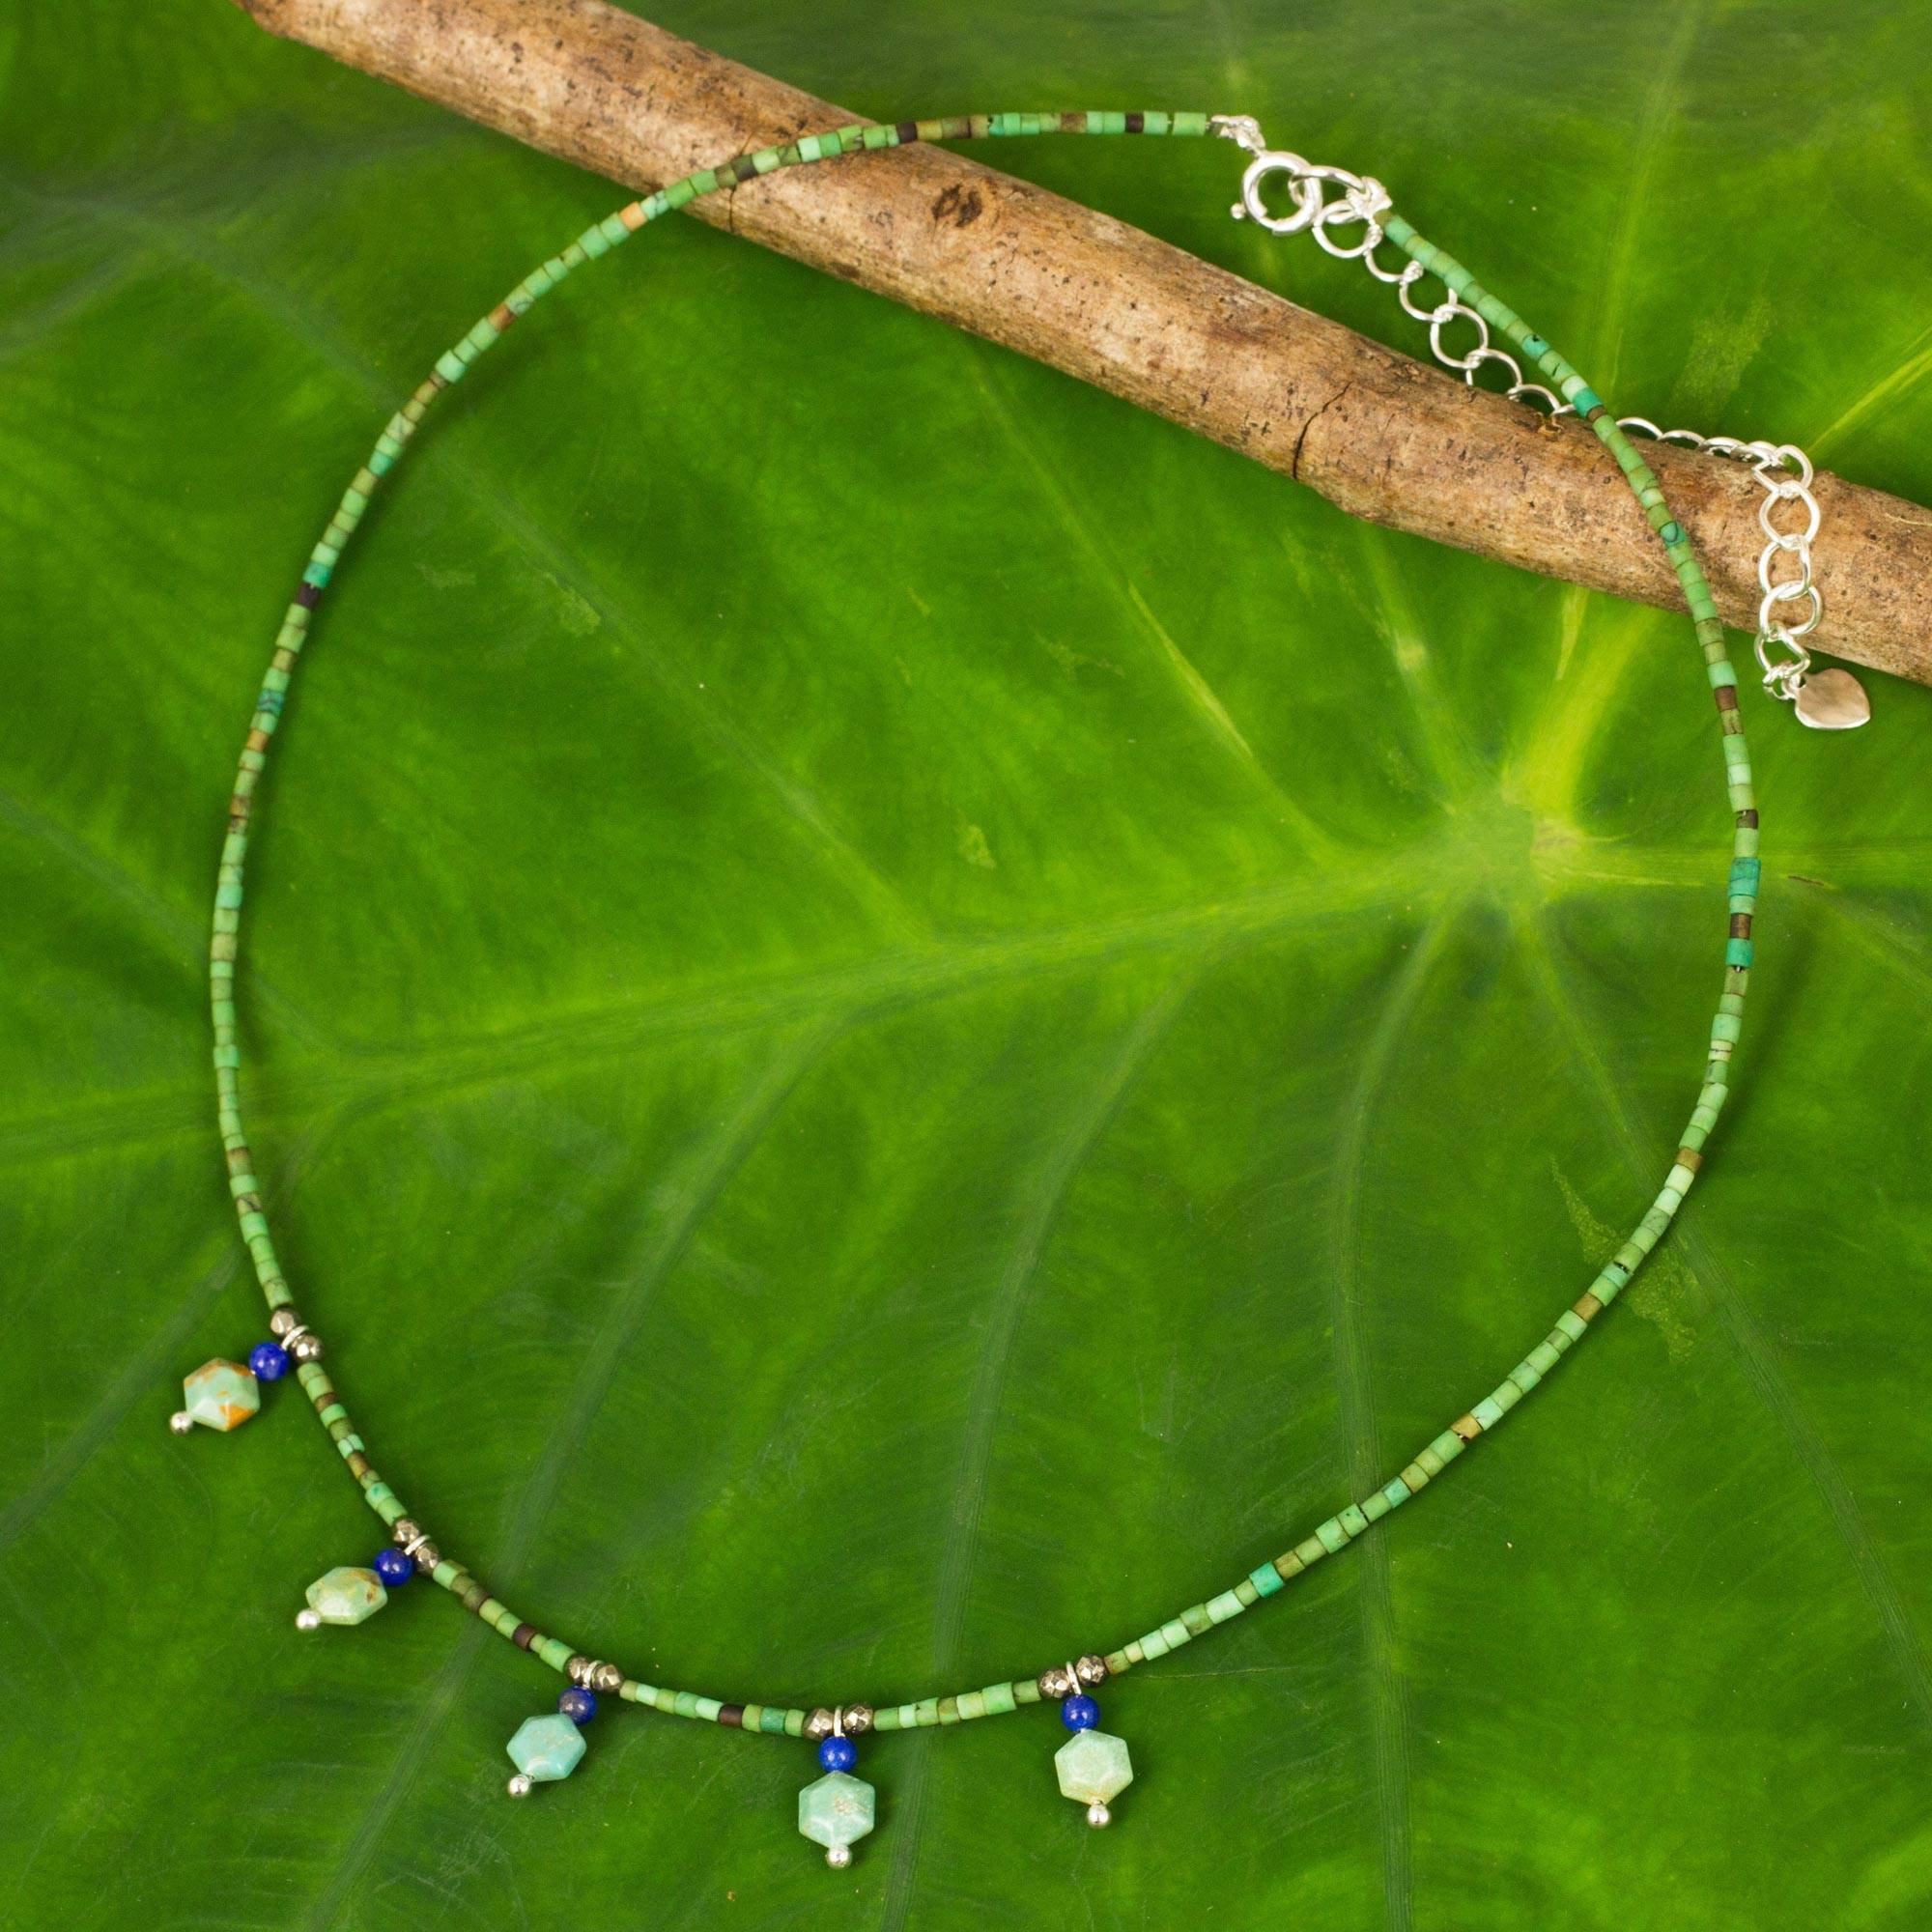 Green Essence Hand Crafted Multi-gemstone Beaded Necklace Turquoise lapis lazuli 925 sterling silver pyrite The Perfect Necklace